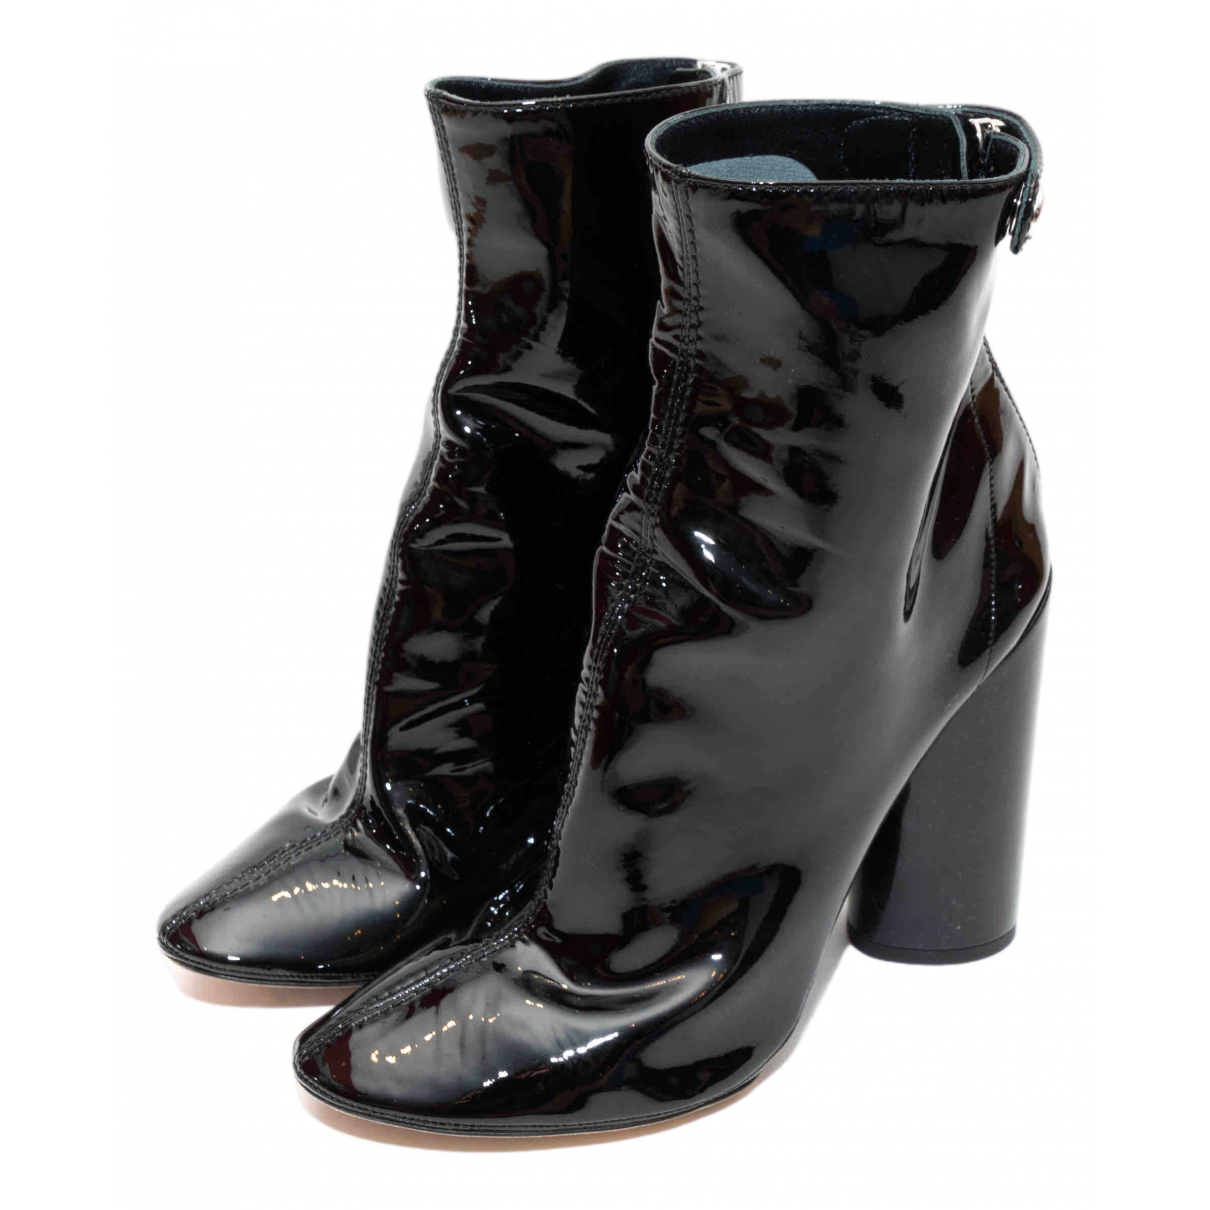 Dior \N Black Patent leather Ankle boots for Women 39 EU